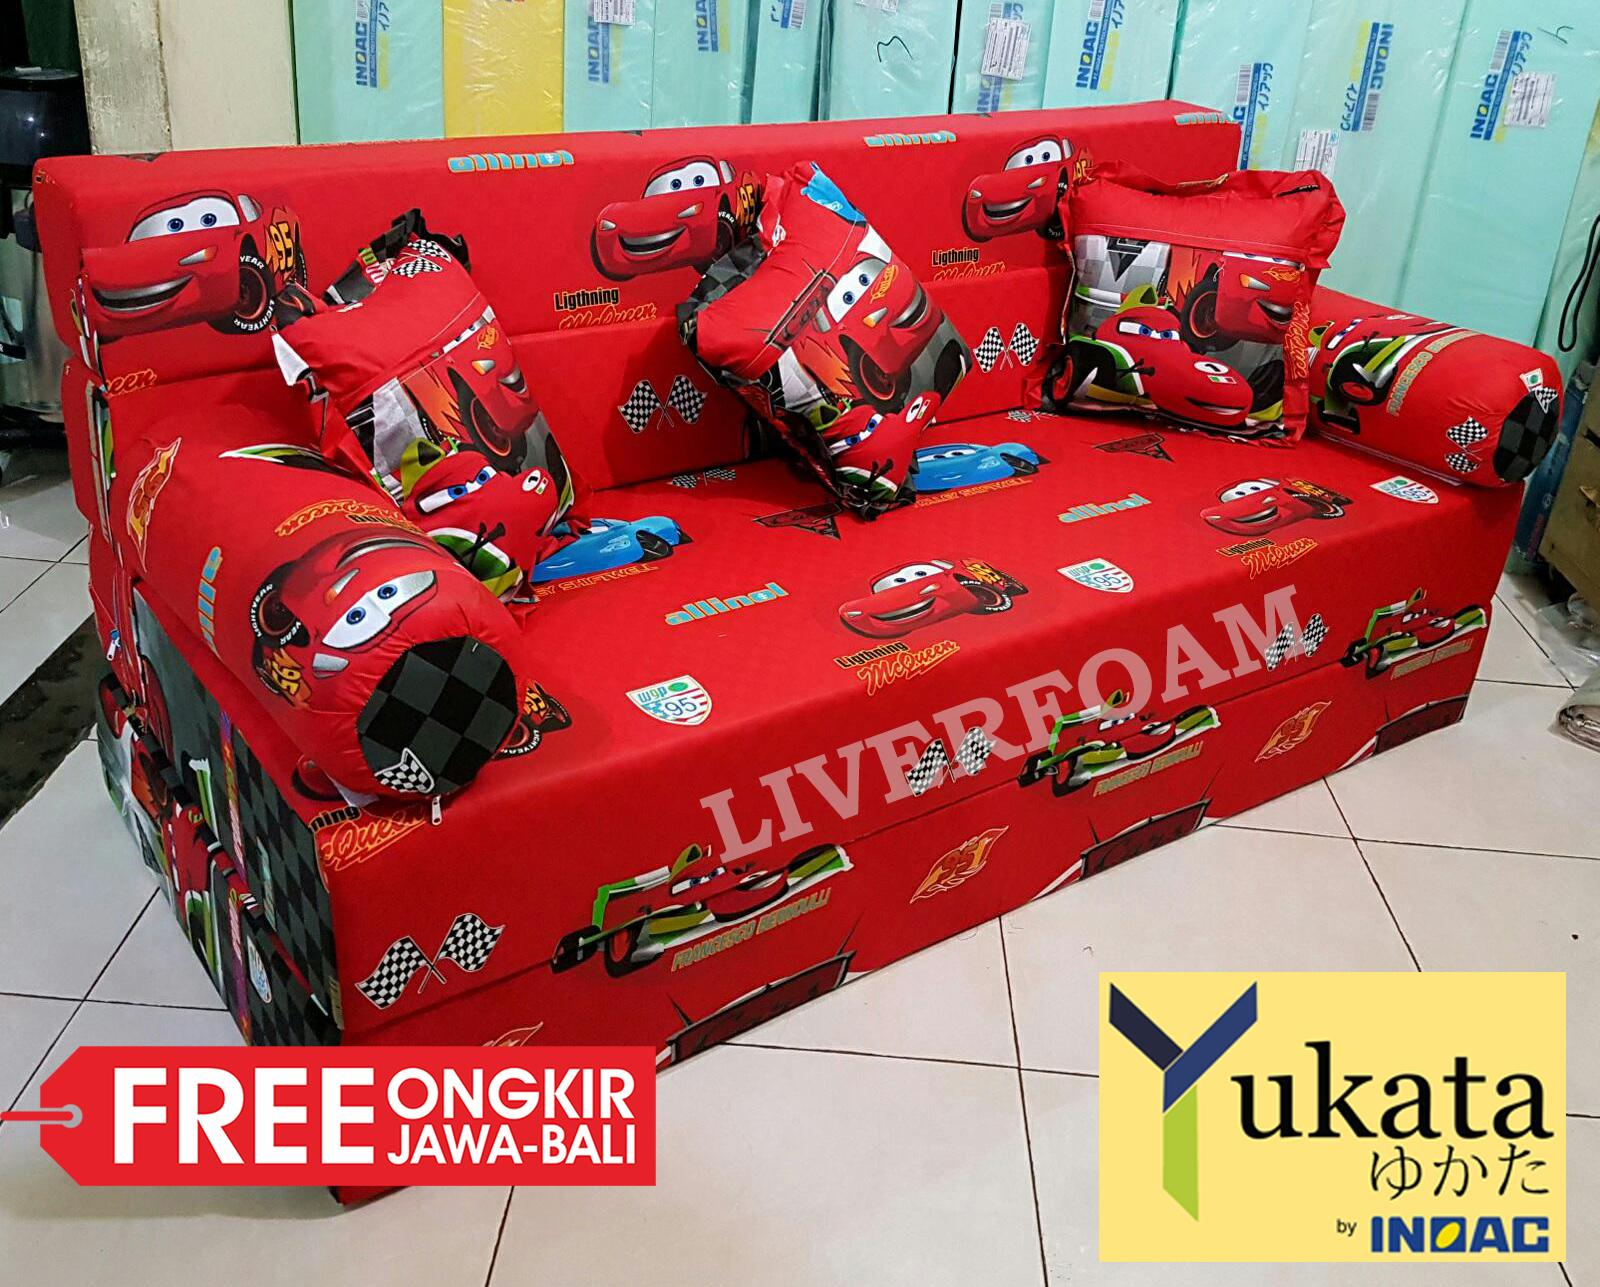 INOAC YUKATA D23 - Sofa bed / Sofabed 3in1 - No.4 - Uk: